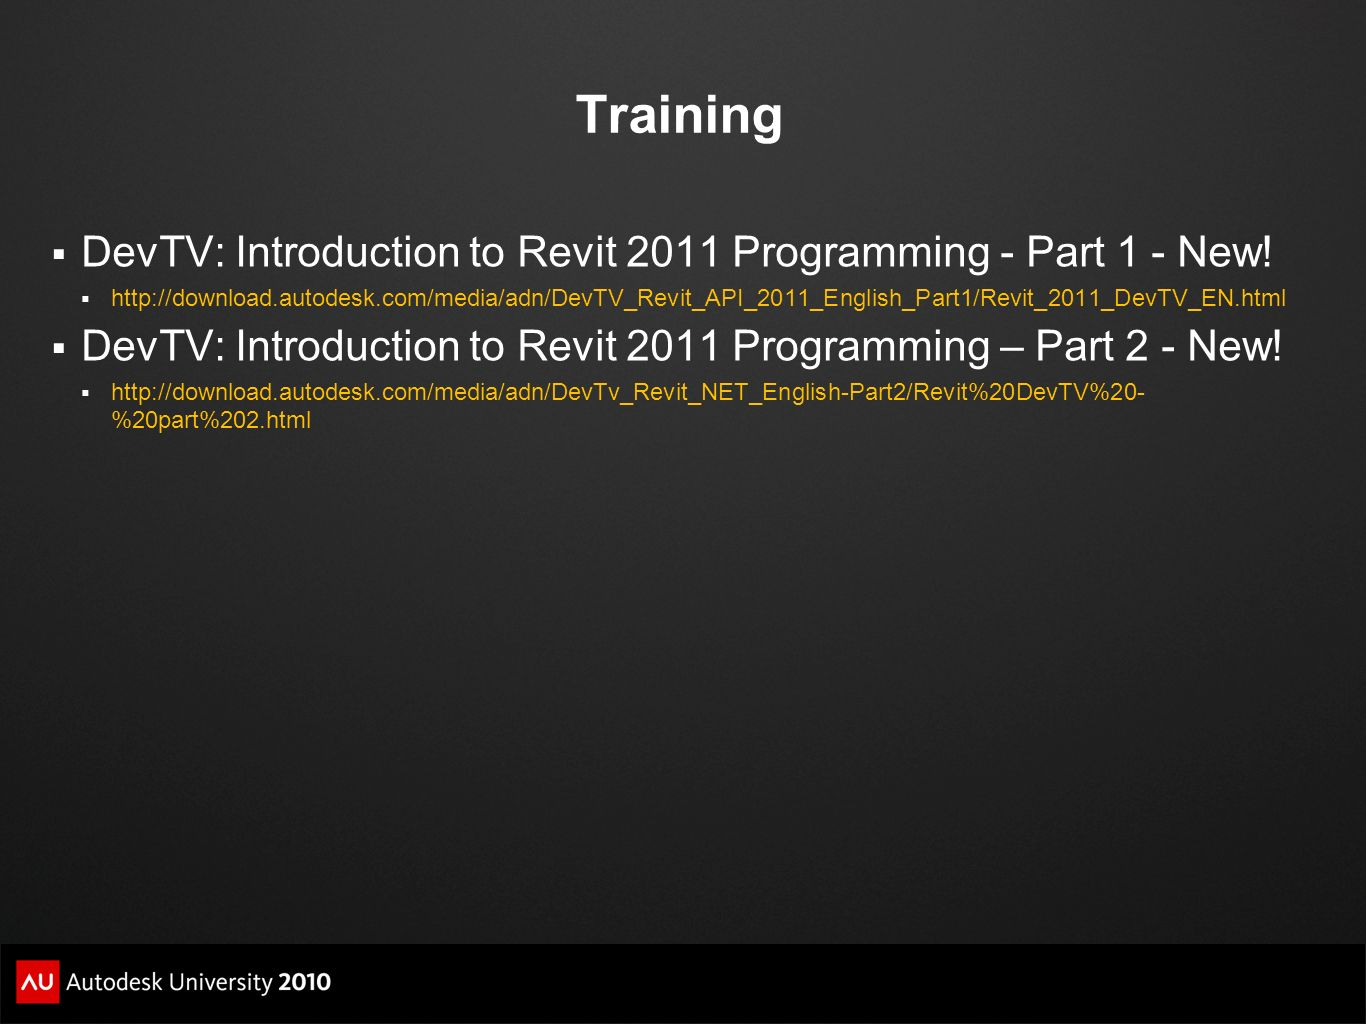 Training DevTV: Introduction to Revit 2011 Programming - Part 1 - New!